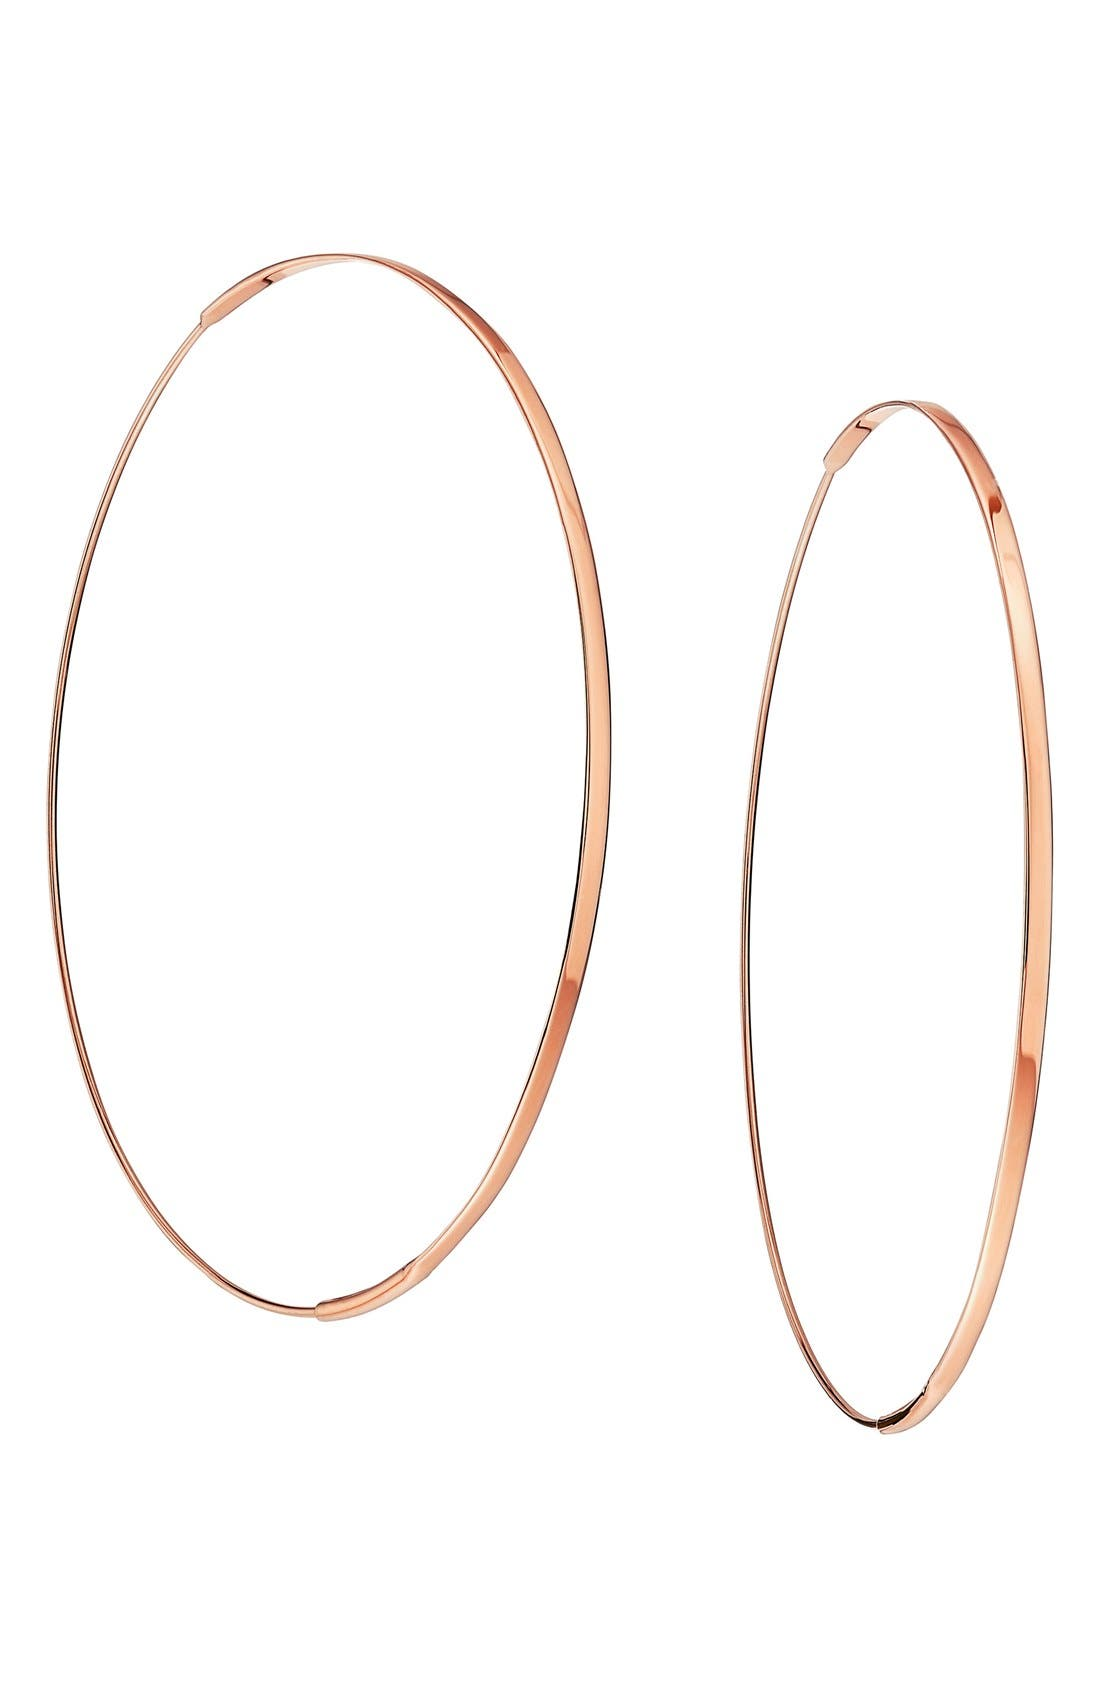 Alternate Image 1 Selected - Lana Jewelry 'Large Flat Magic' Hoop Earrings